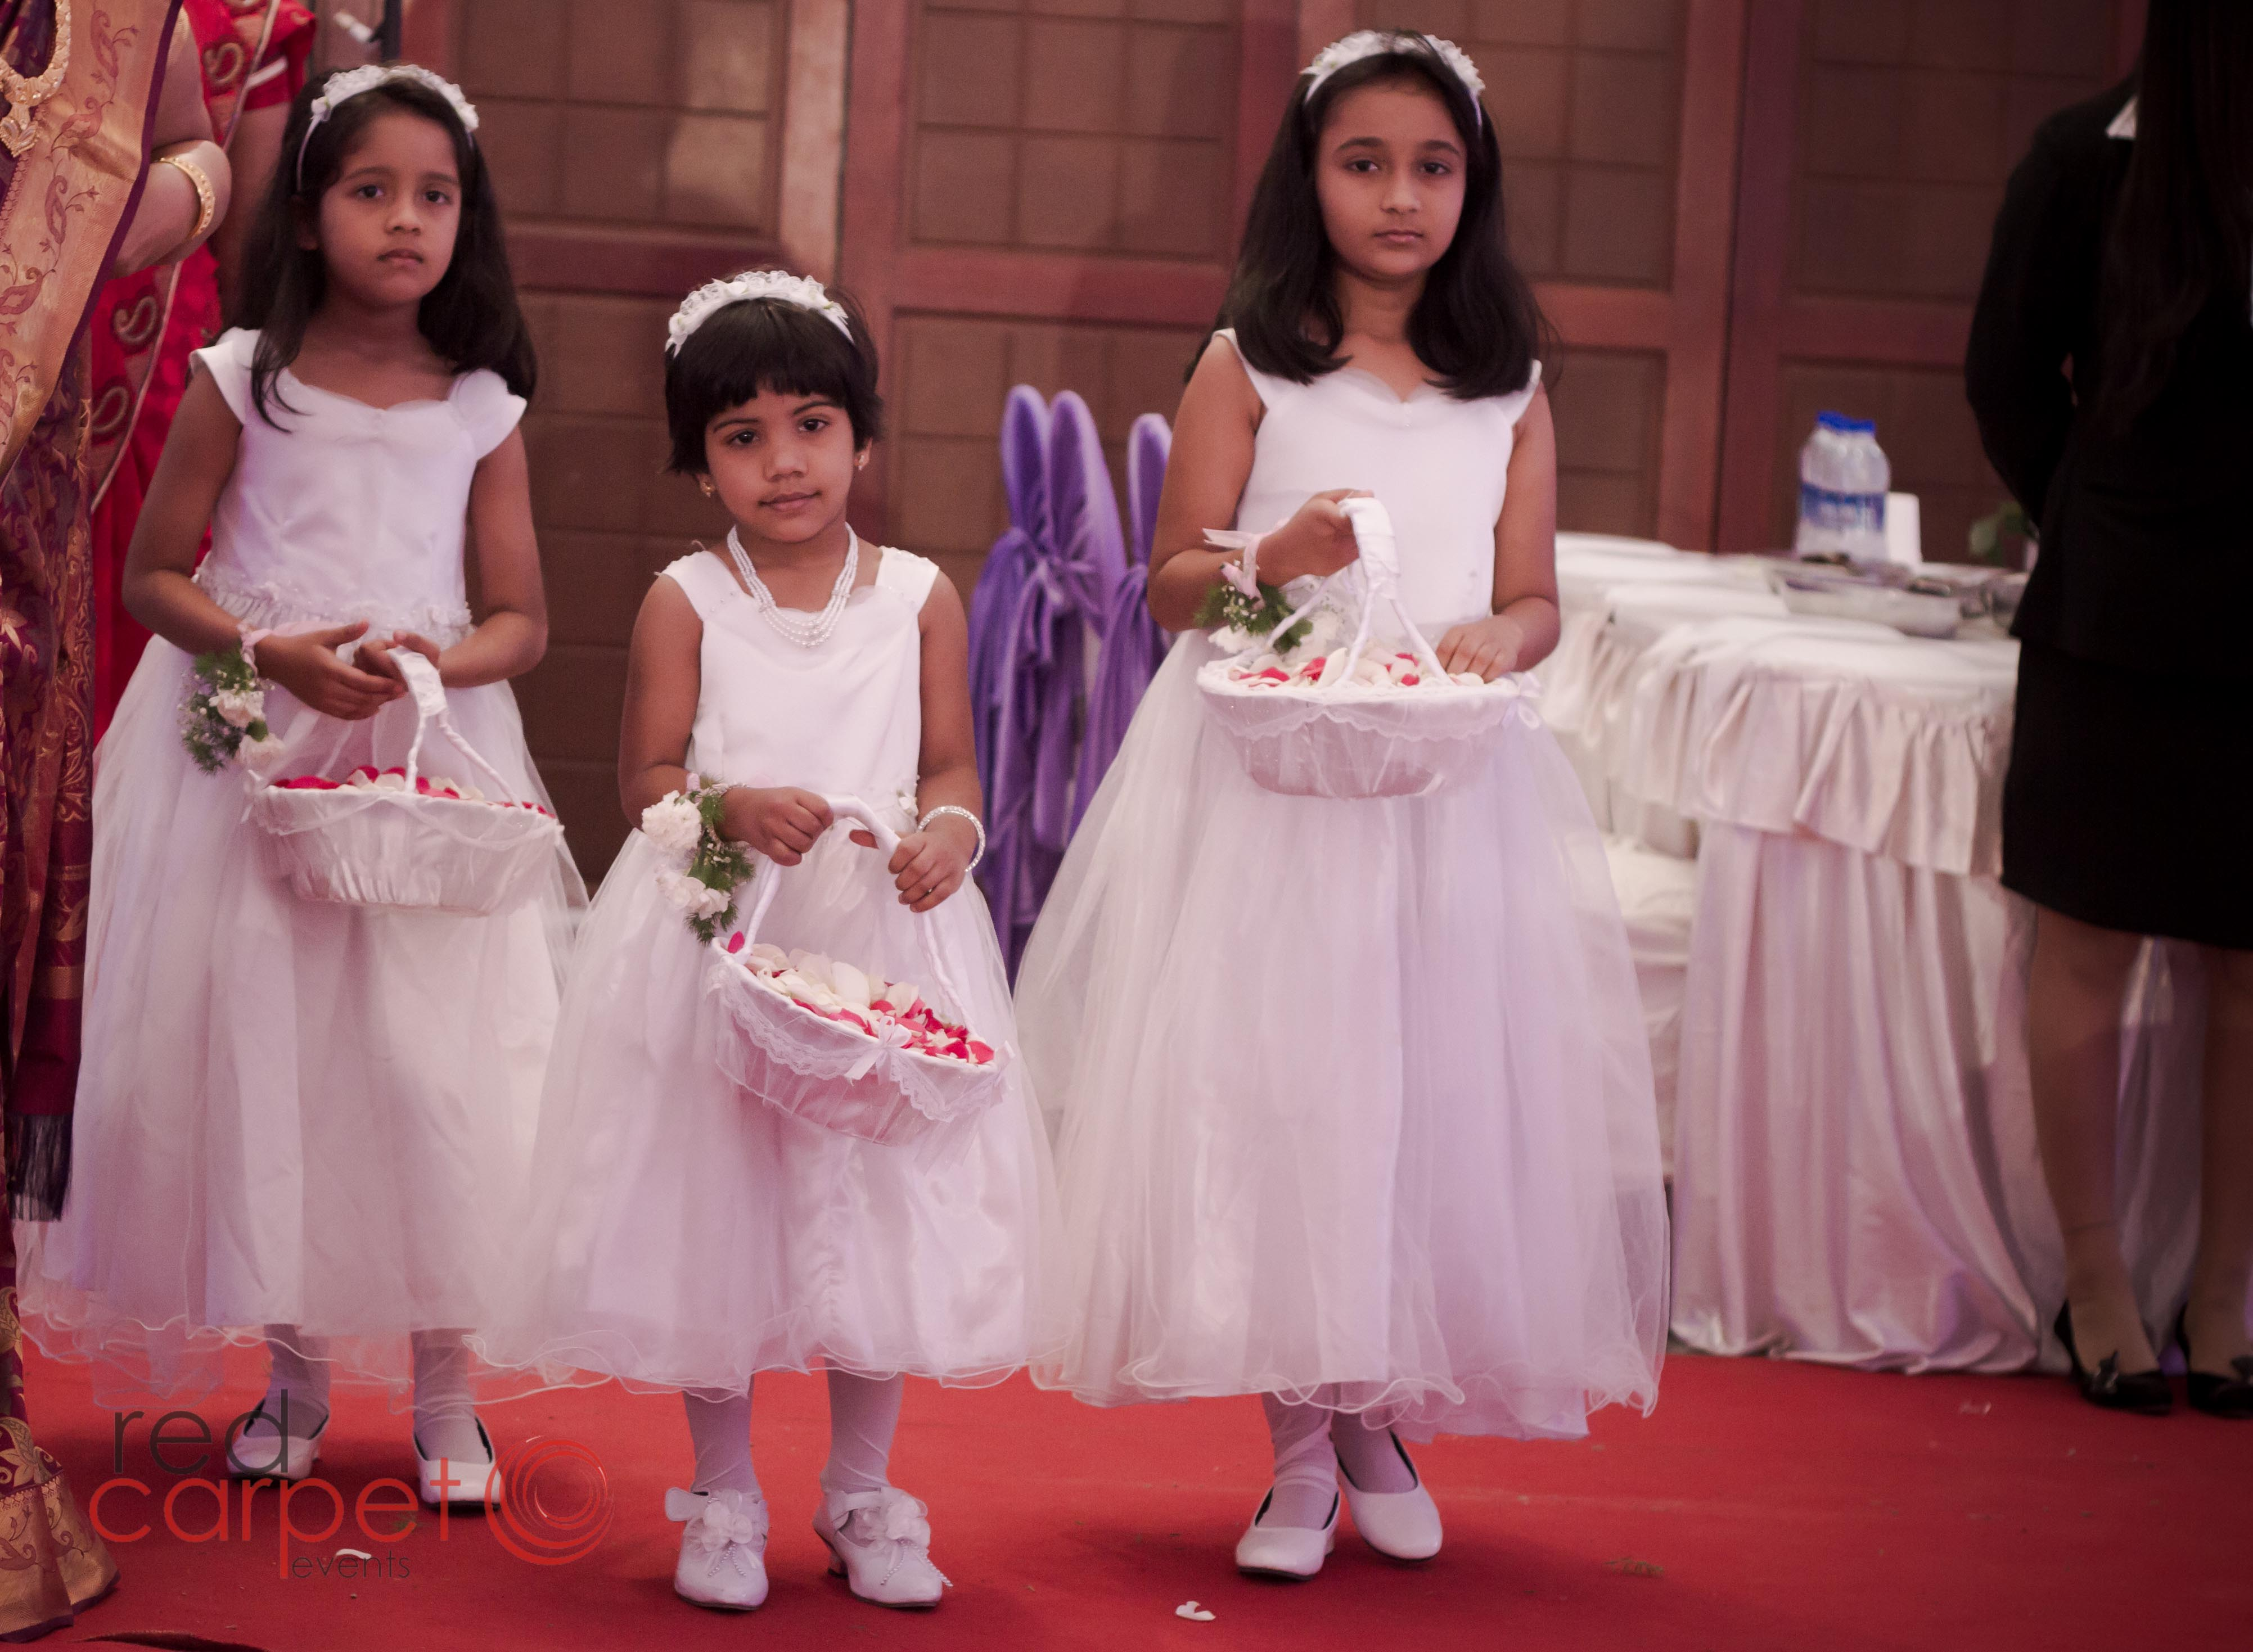 flower girls for western style christian wedding kottayam kerala india.jpg